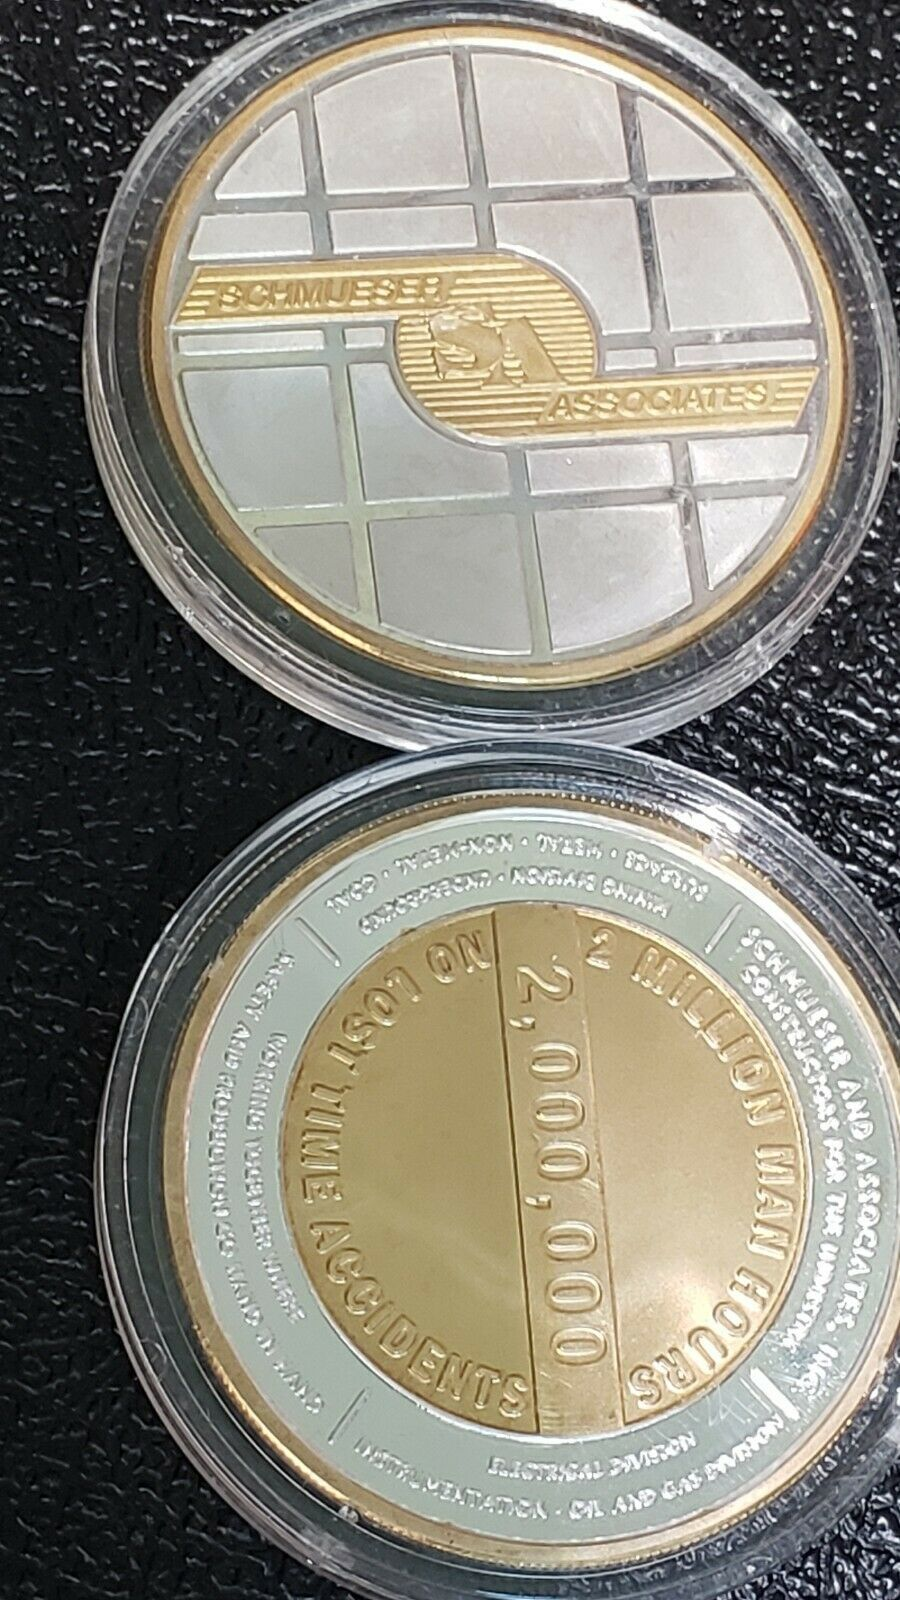 RARE 4 Ounces Total. - 2x 2oz Rounds NWTM .999 Fine Silver Schmueser Associates